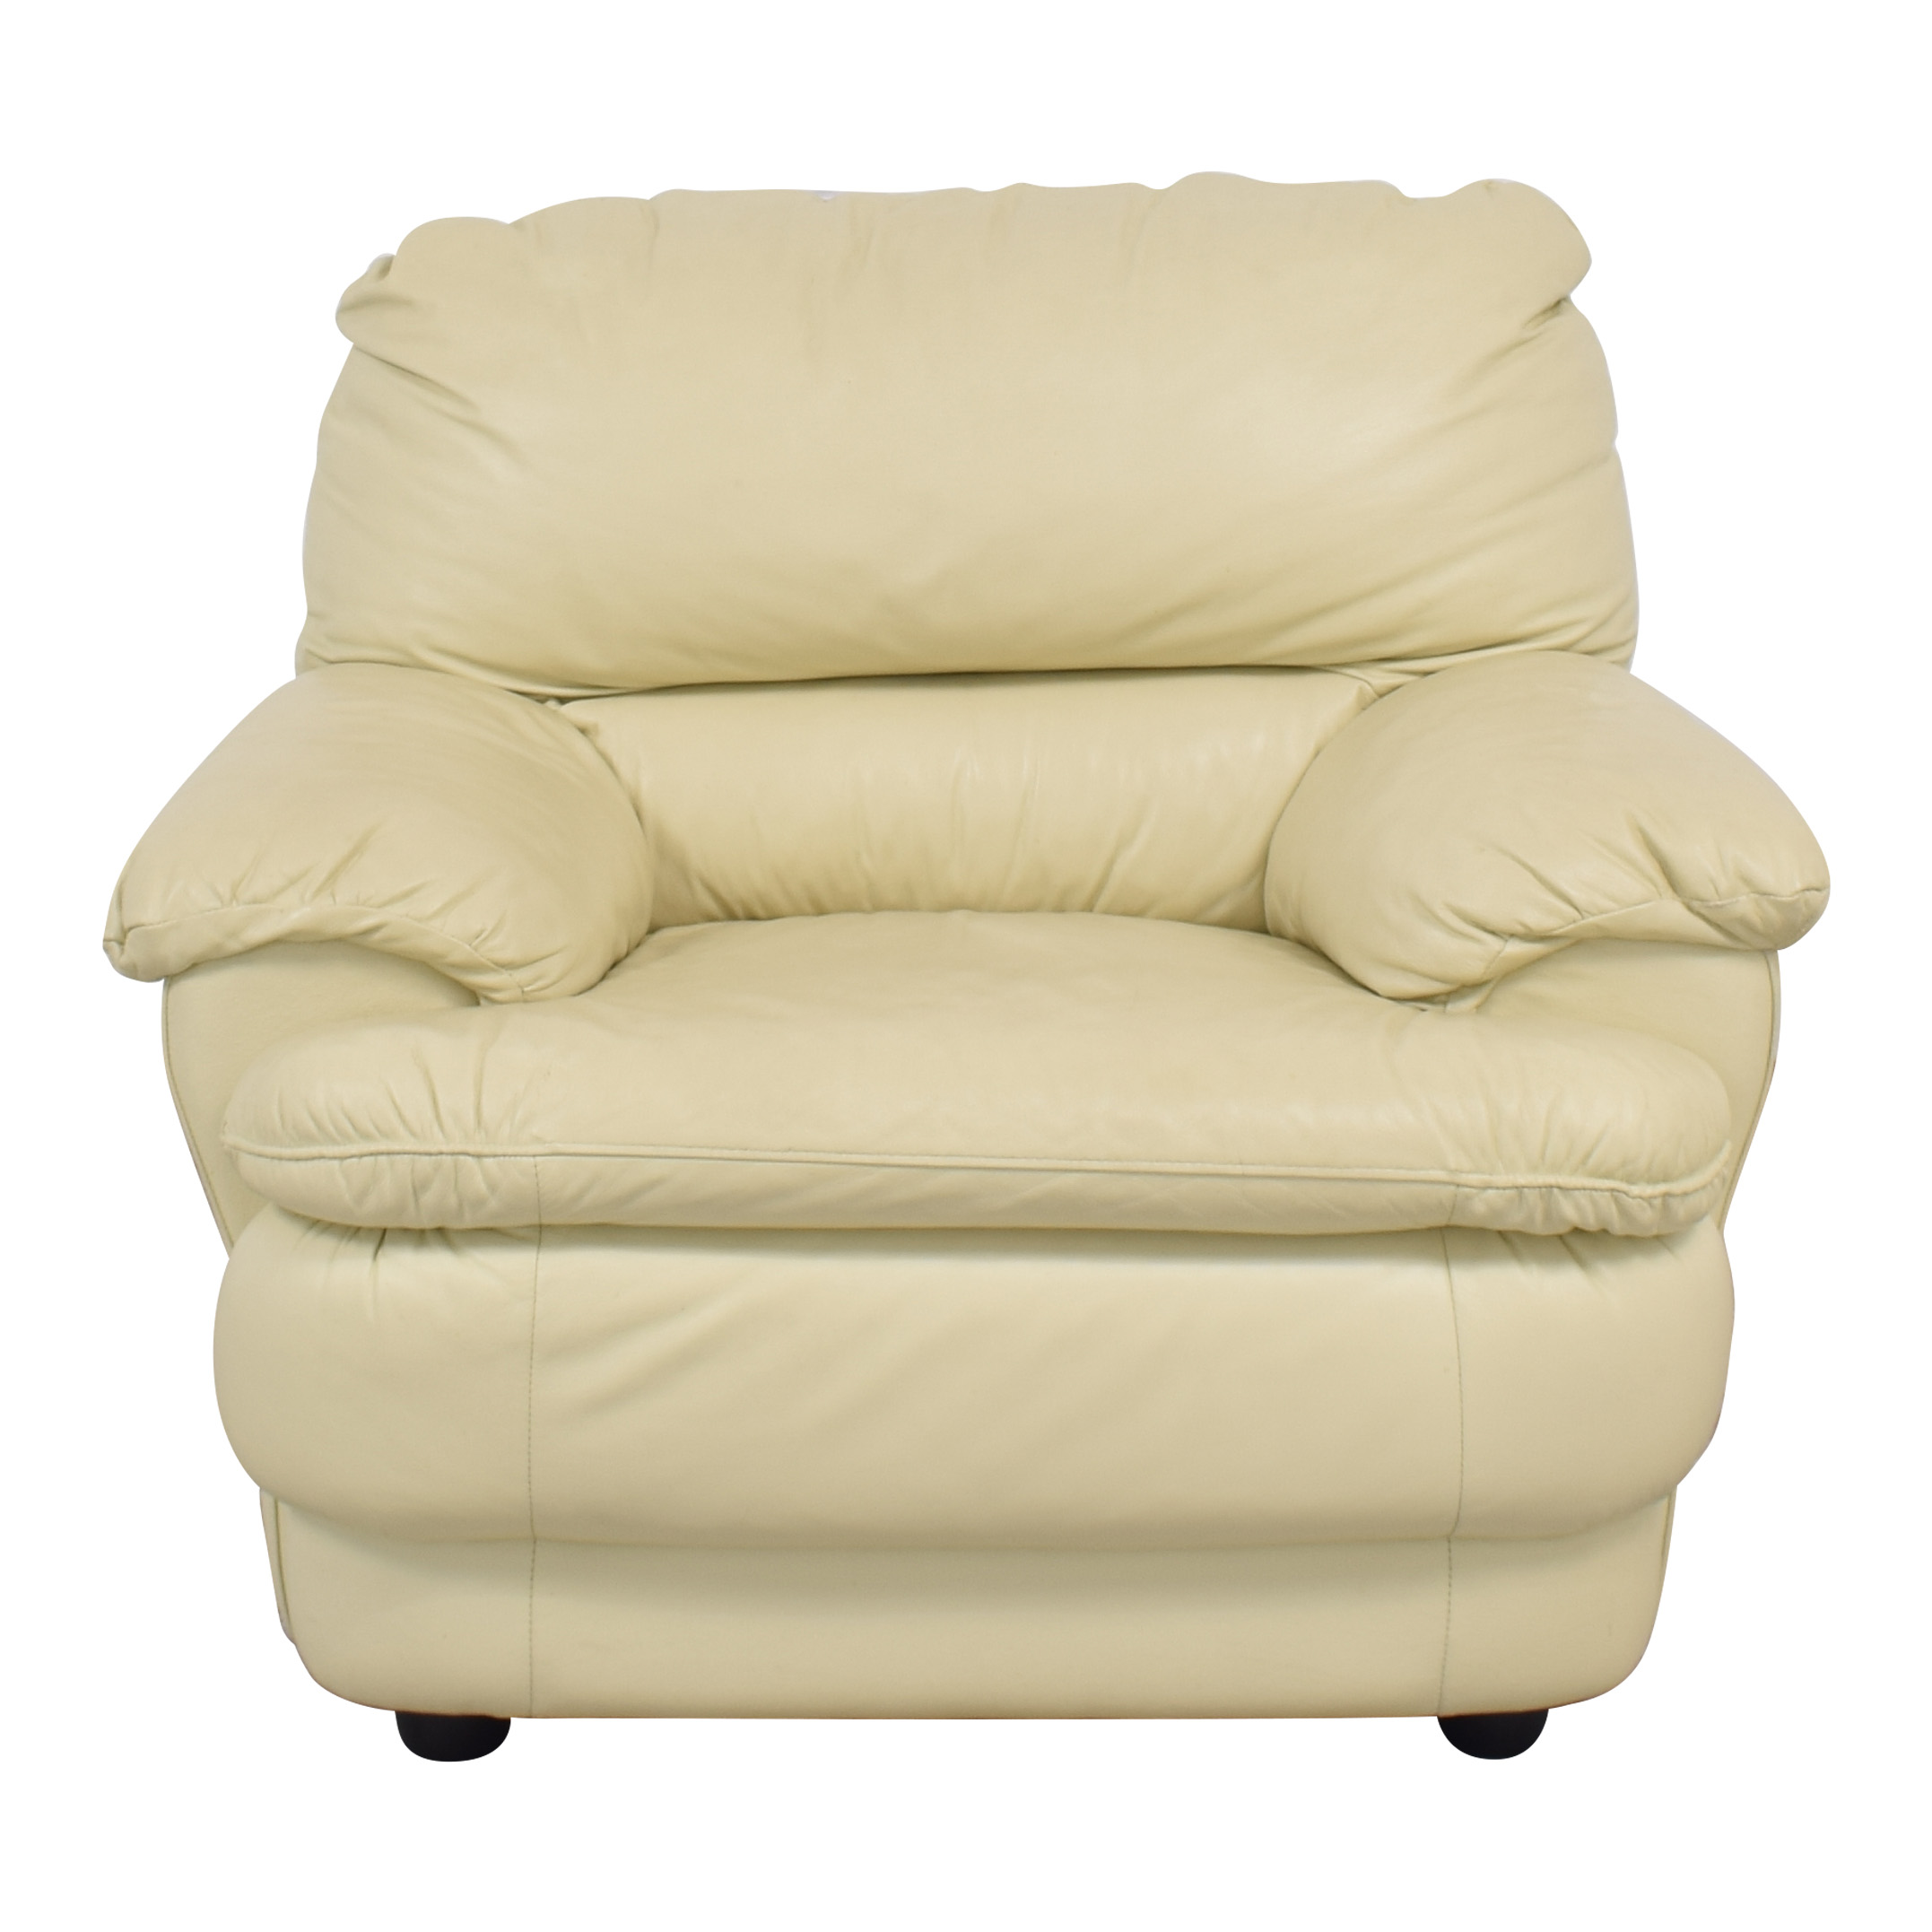 Chateau d'Ax Lounge Chair sale